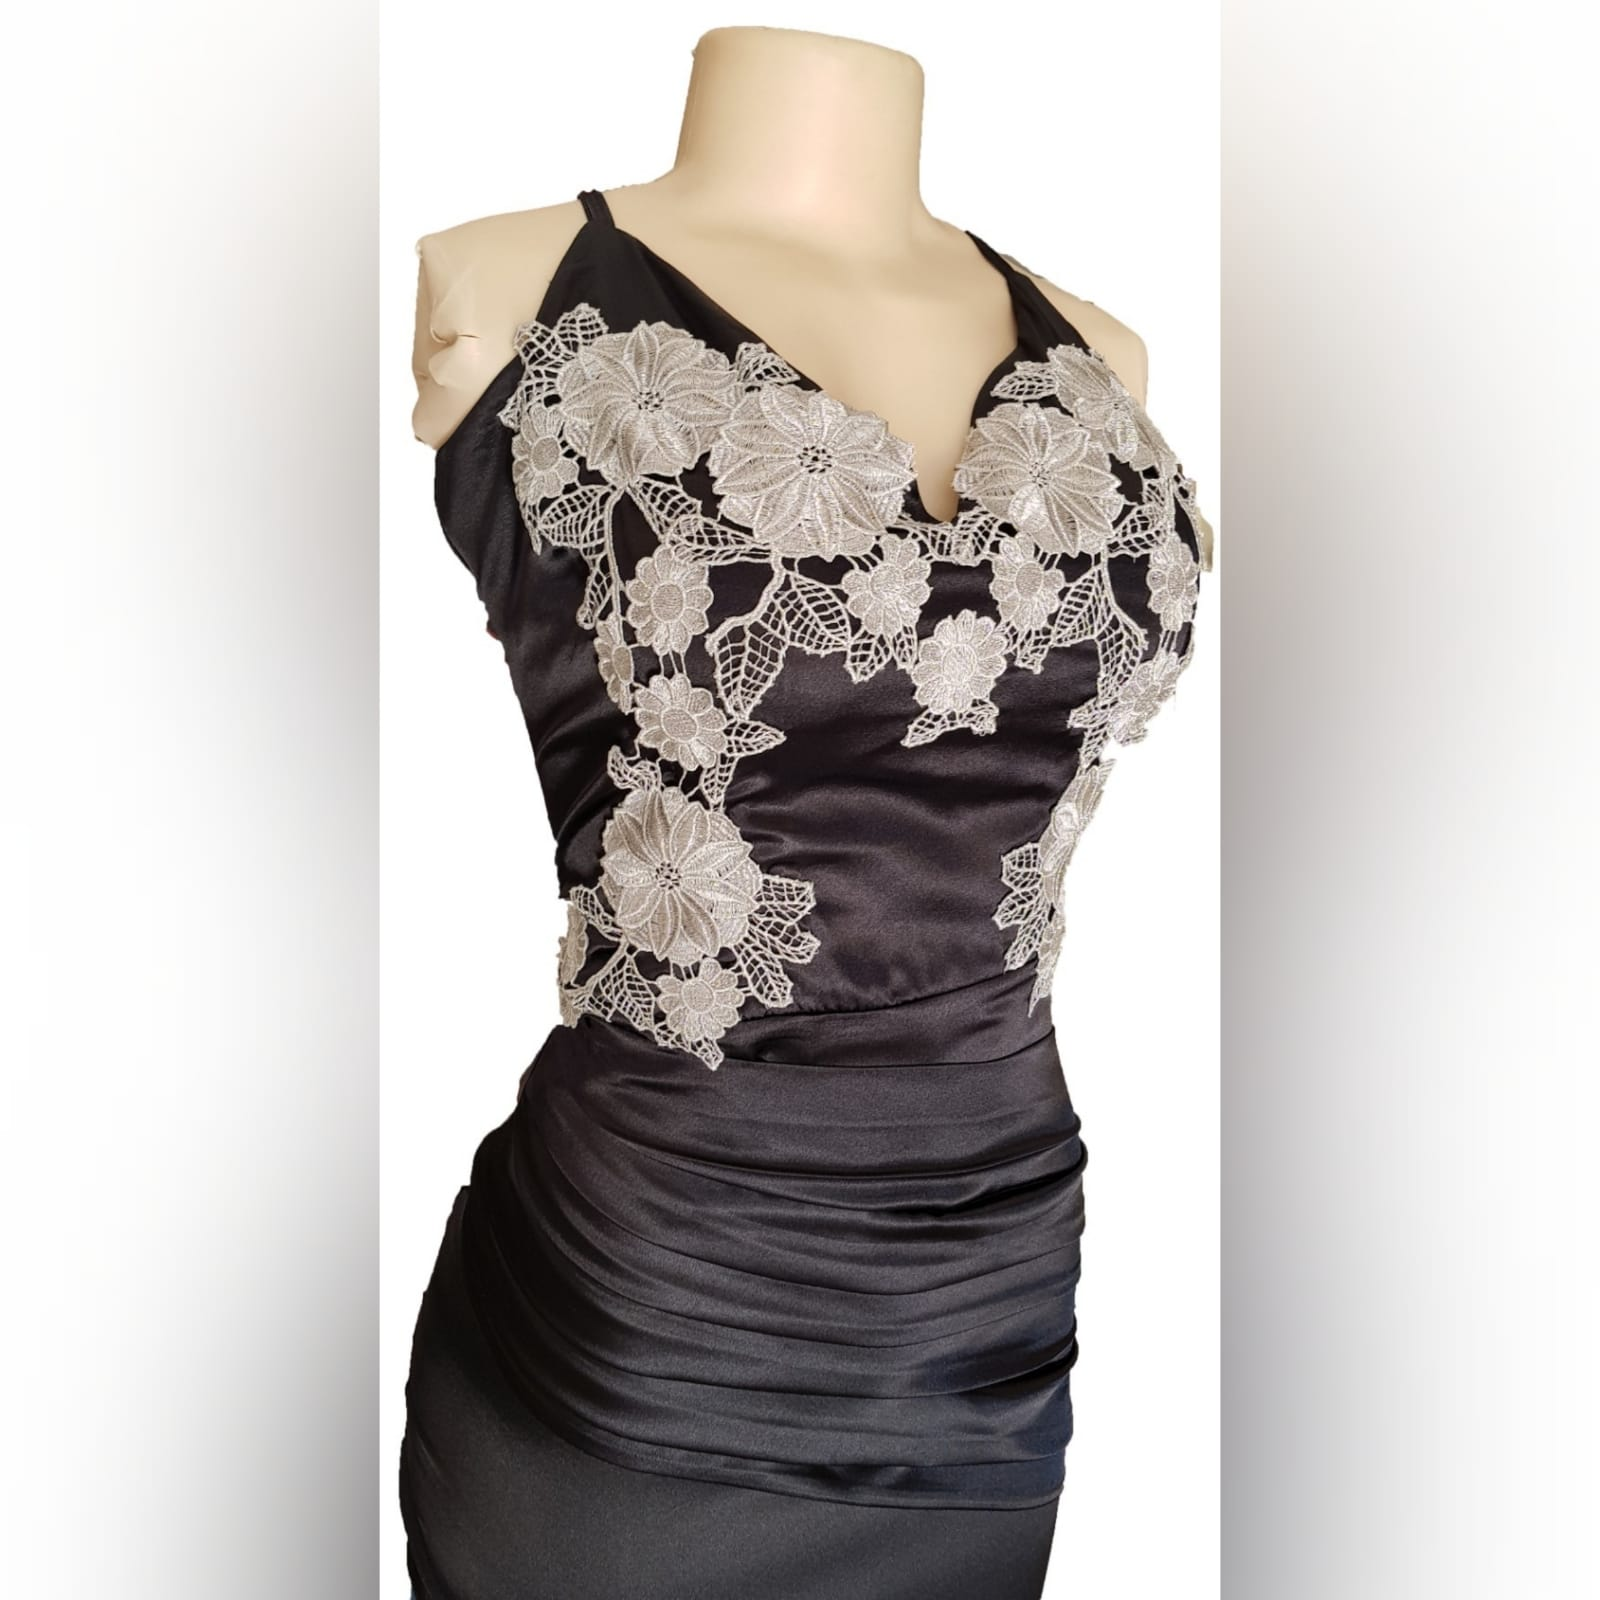 Black satin long fitted prom dress 6 a black satin long fitted prom dress with silver lace detail, will add an elegance to your special event.